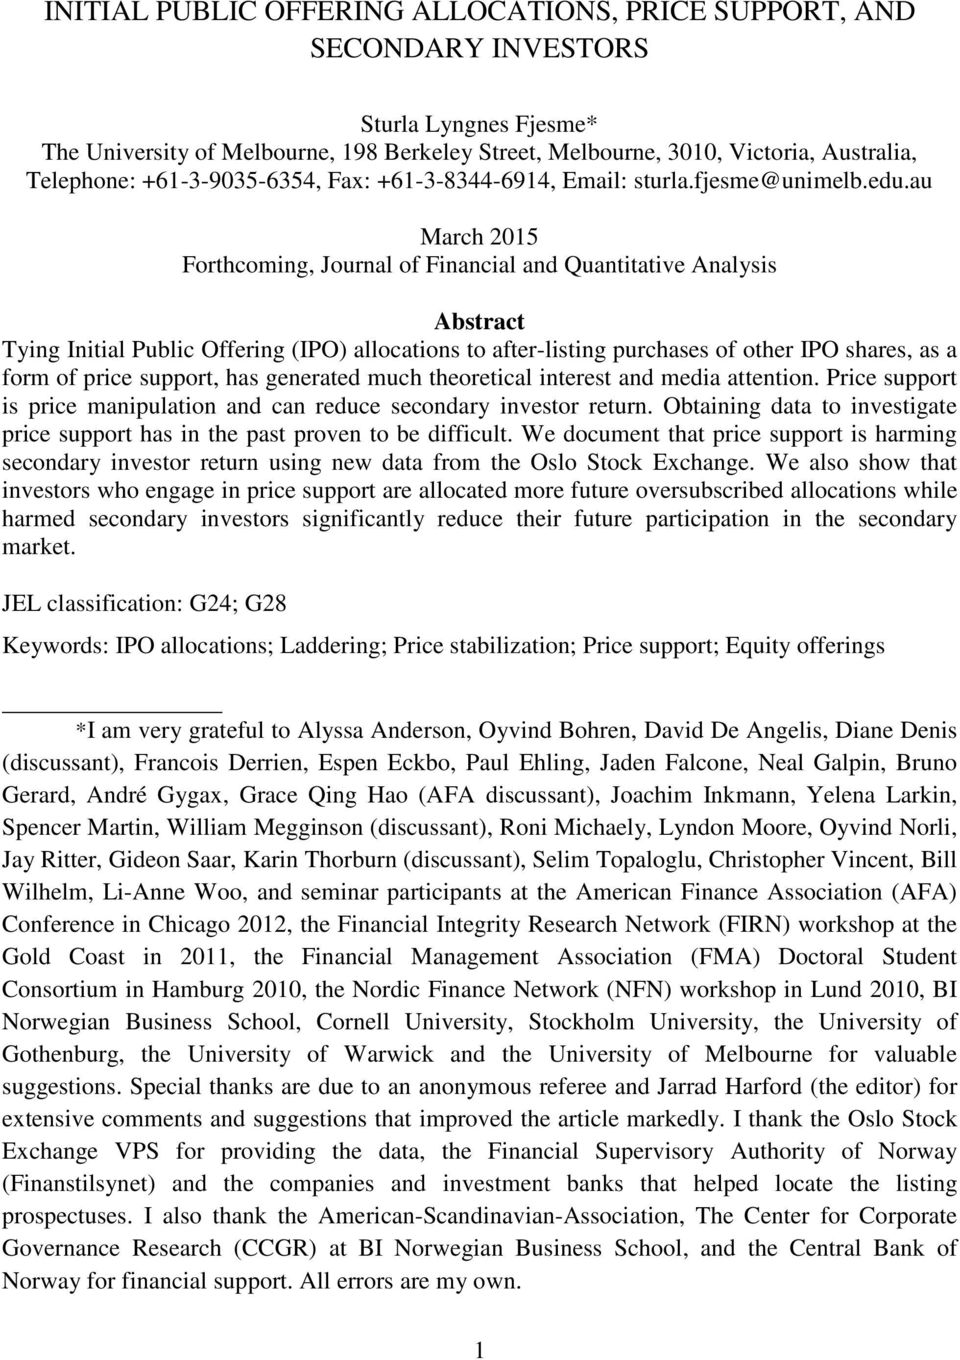 au March 2015 Forthcoming, Journal of Financial and Quantitative Analysis Abstract Tying Initial Public Offering (IPO) allocations to after-listing purchases of other IPO shares, as a form of price